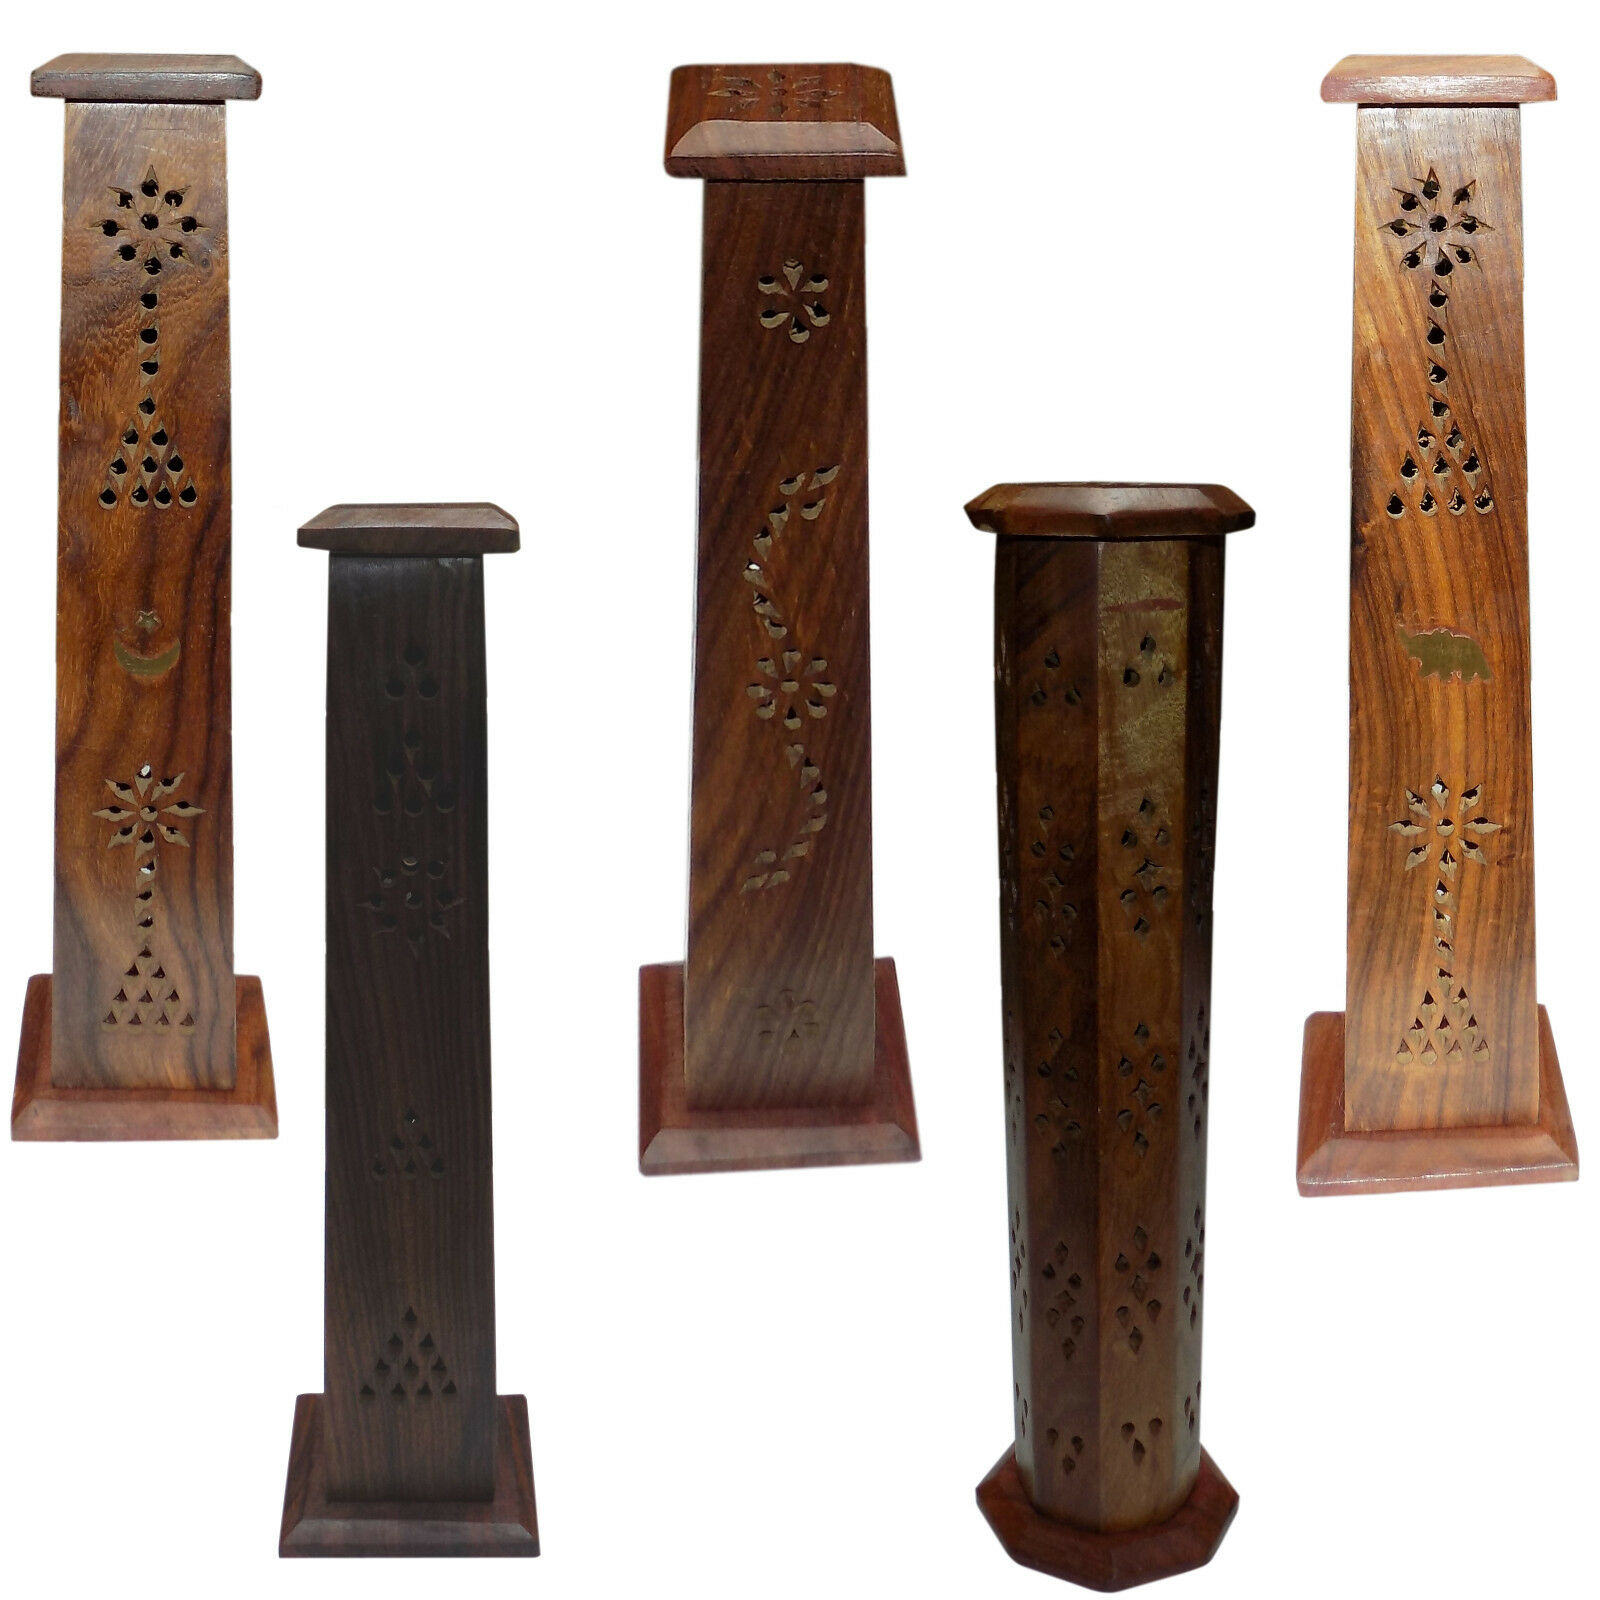 Wooden Carved Incense Burner Cone Holder Tower 12  Hand Carved Brass Inlay